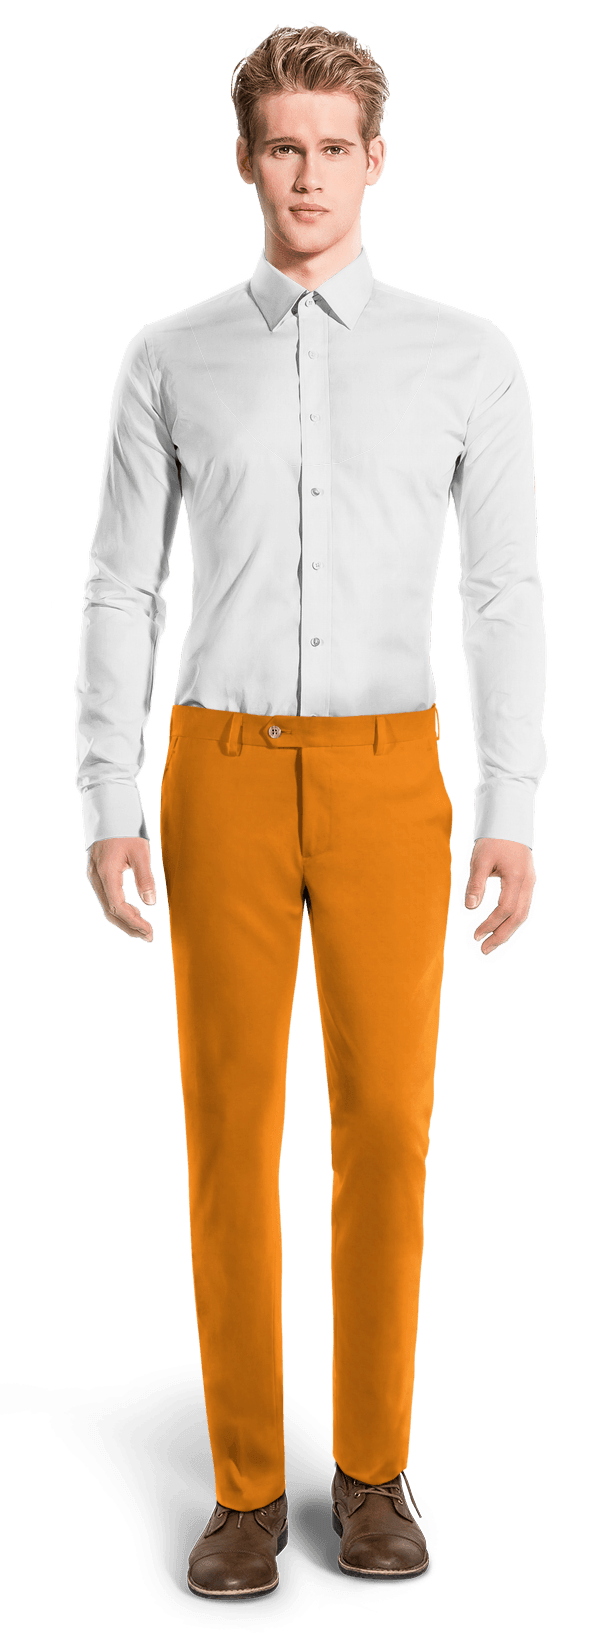 Pantaloni chino slim fit arancioni